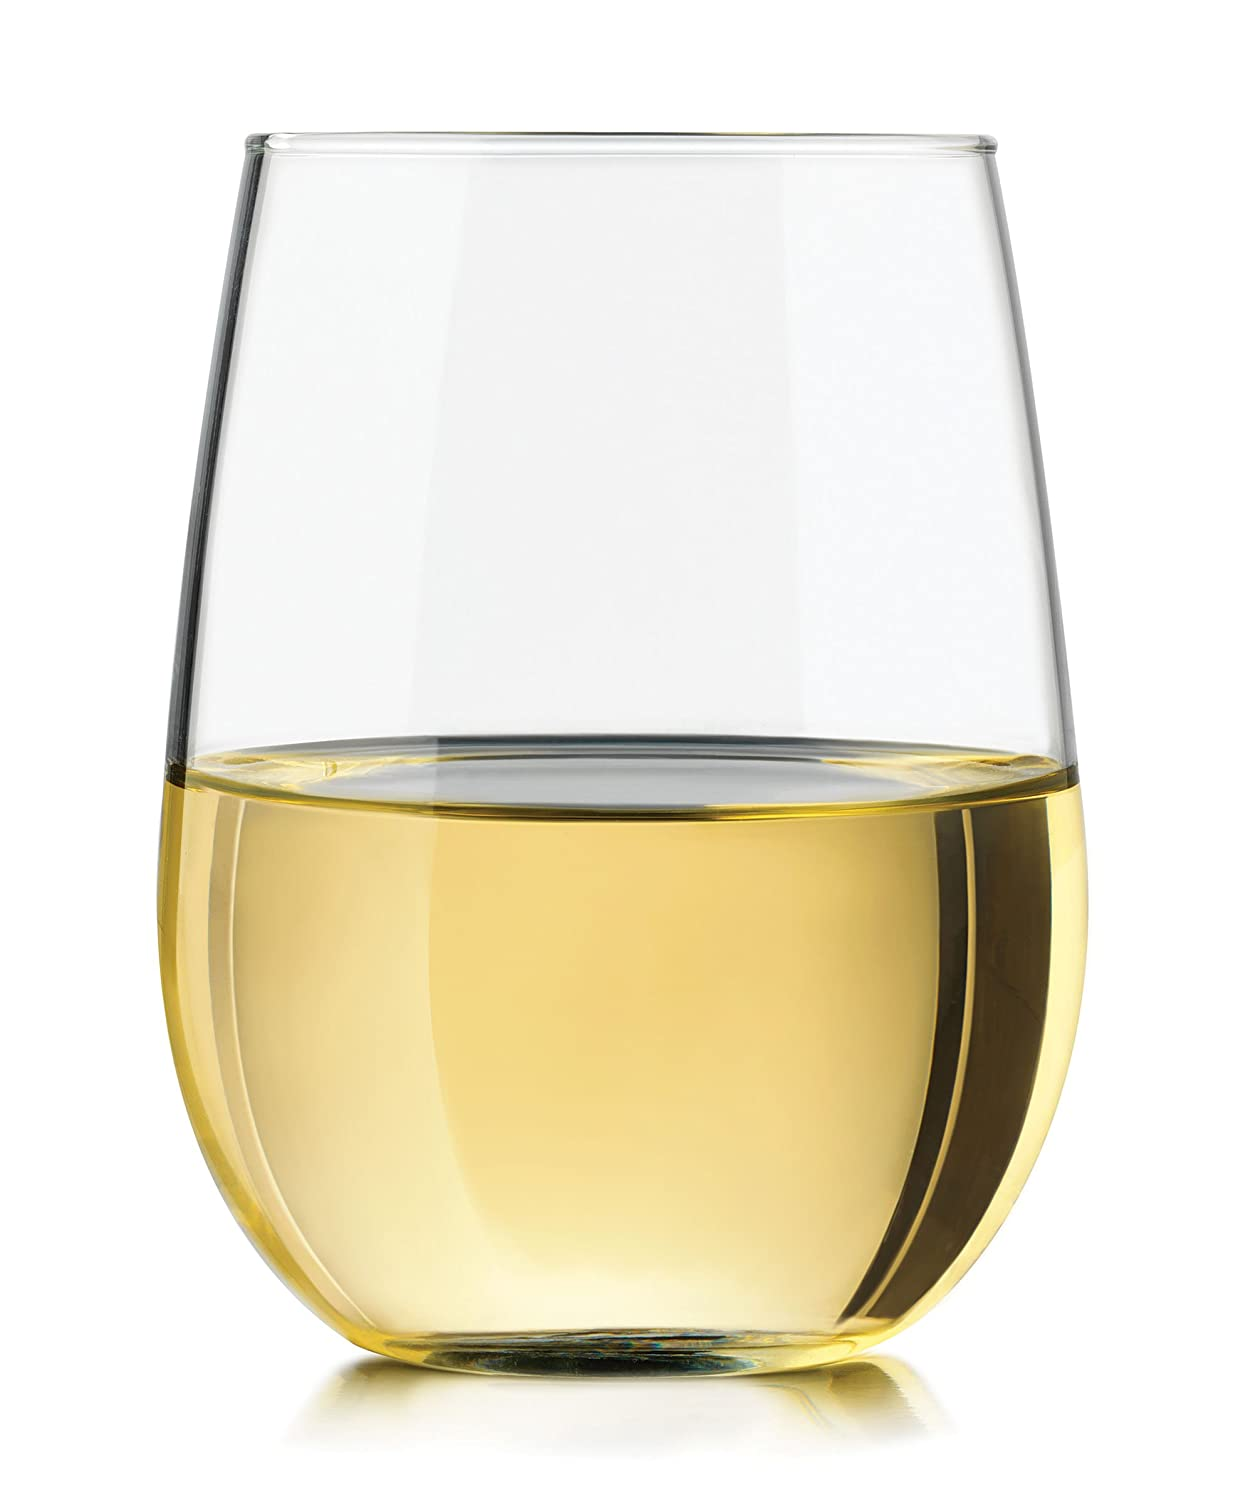 Stemless Wine Glasses By Lumiera – Perfect Wine Glasses for Red Wine or White Wine. Ideal For Gifts – Wedding Gifts, Corporate Gifts or Thank You Gifts